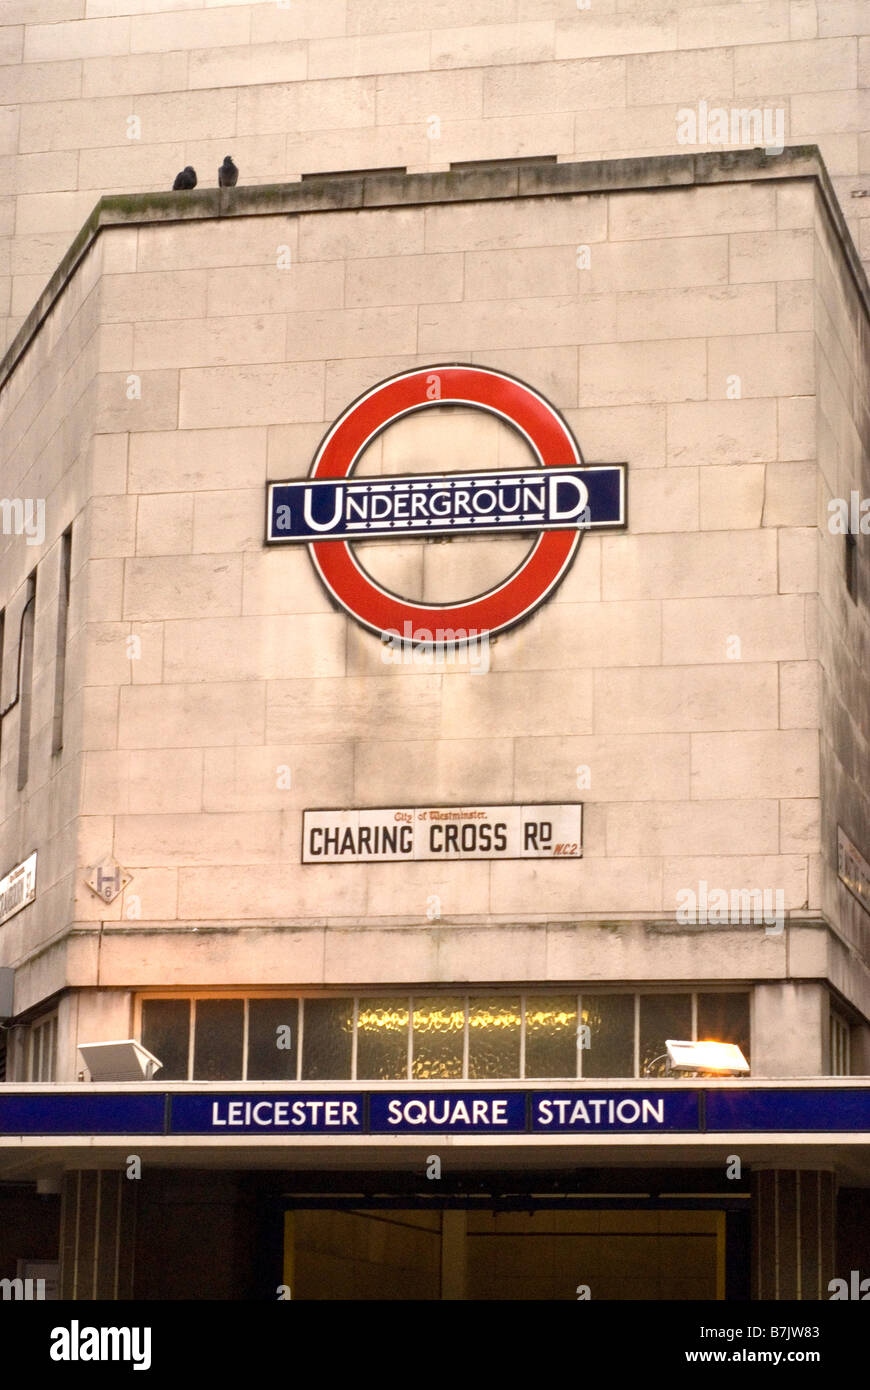 Leicester Square Tube Station, Charring Cross Road, London Underground - Stock Image